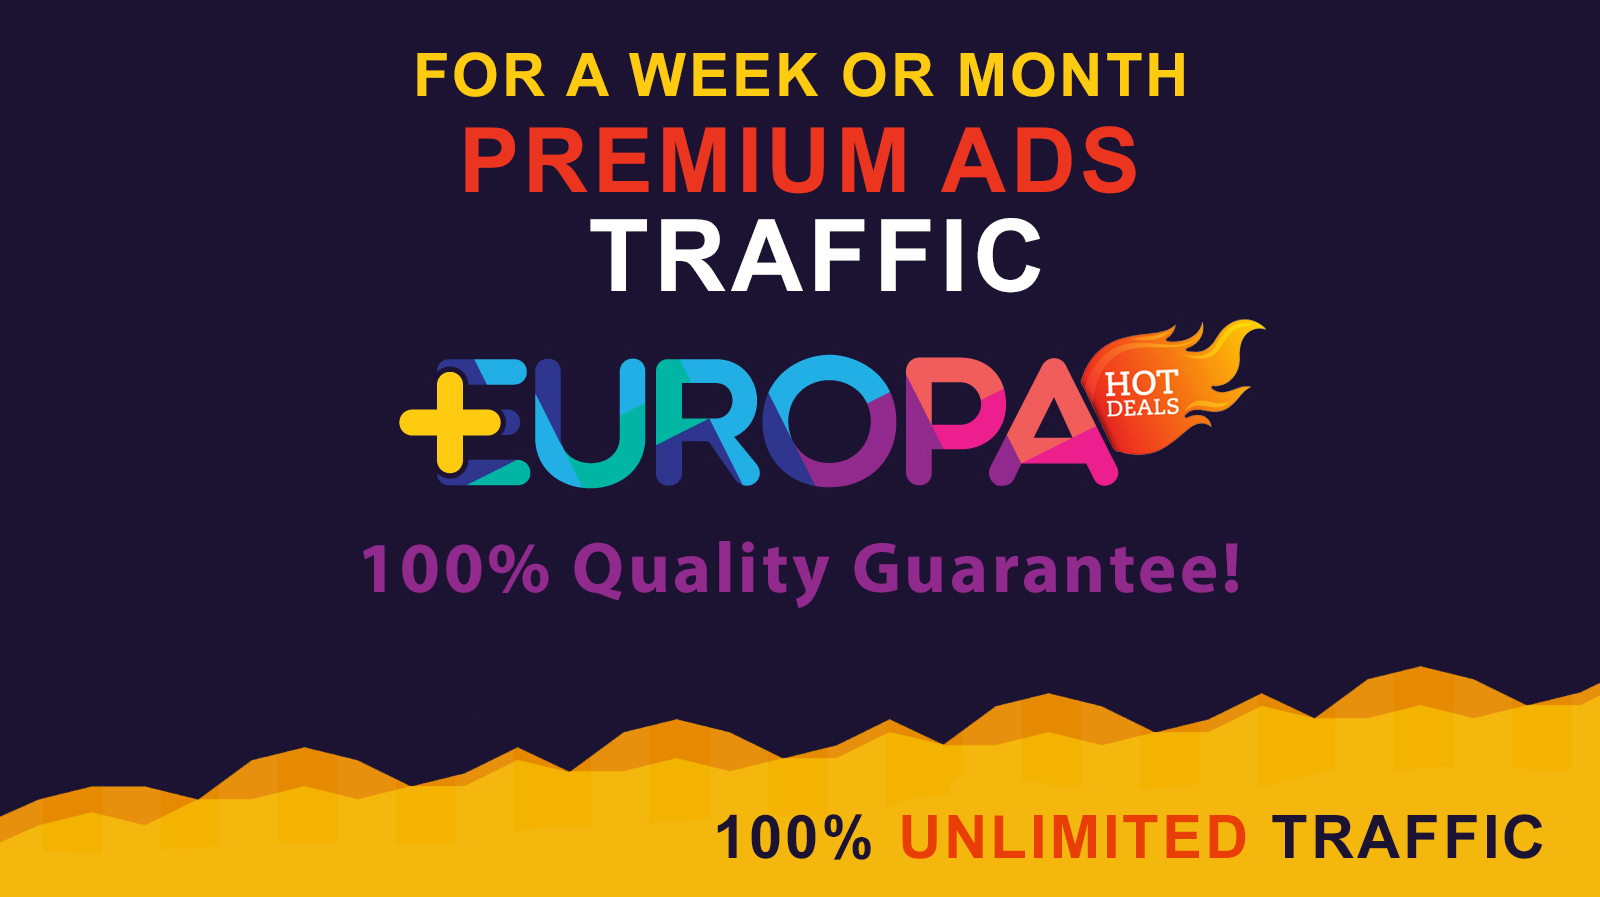 PREMIUM ADS TRAFFIC FOR A WEEK OR MONTH PLUS BONUS